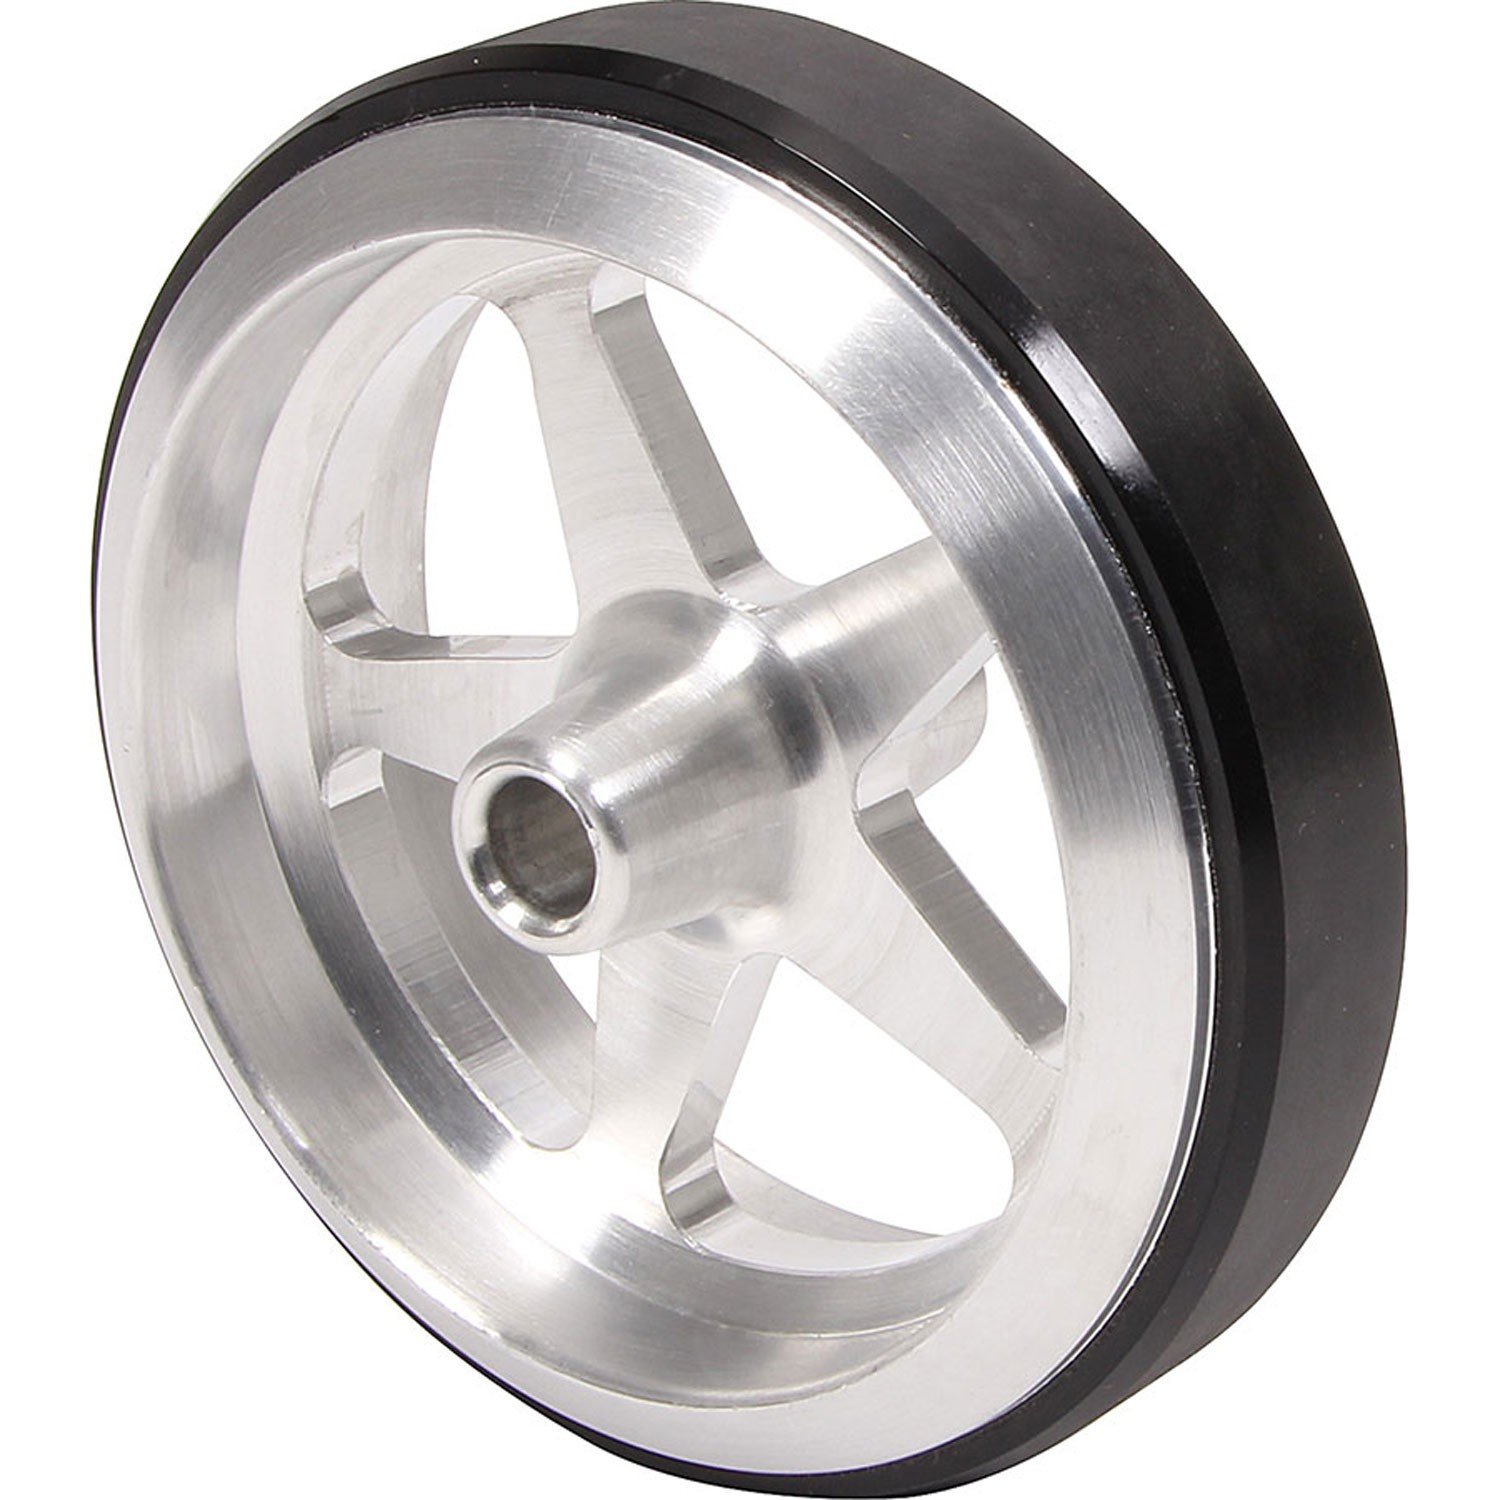 Big End Billet Wheelie Bar Wheels, Star Style Wheels, each